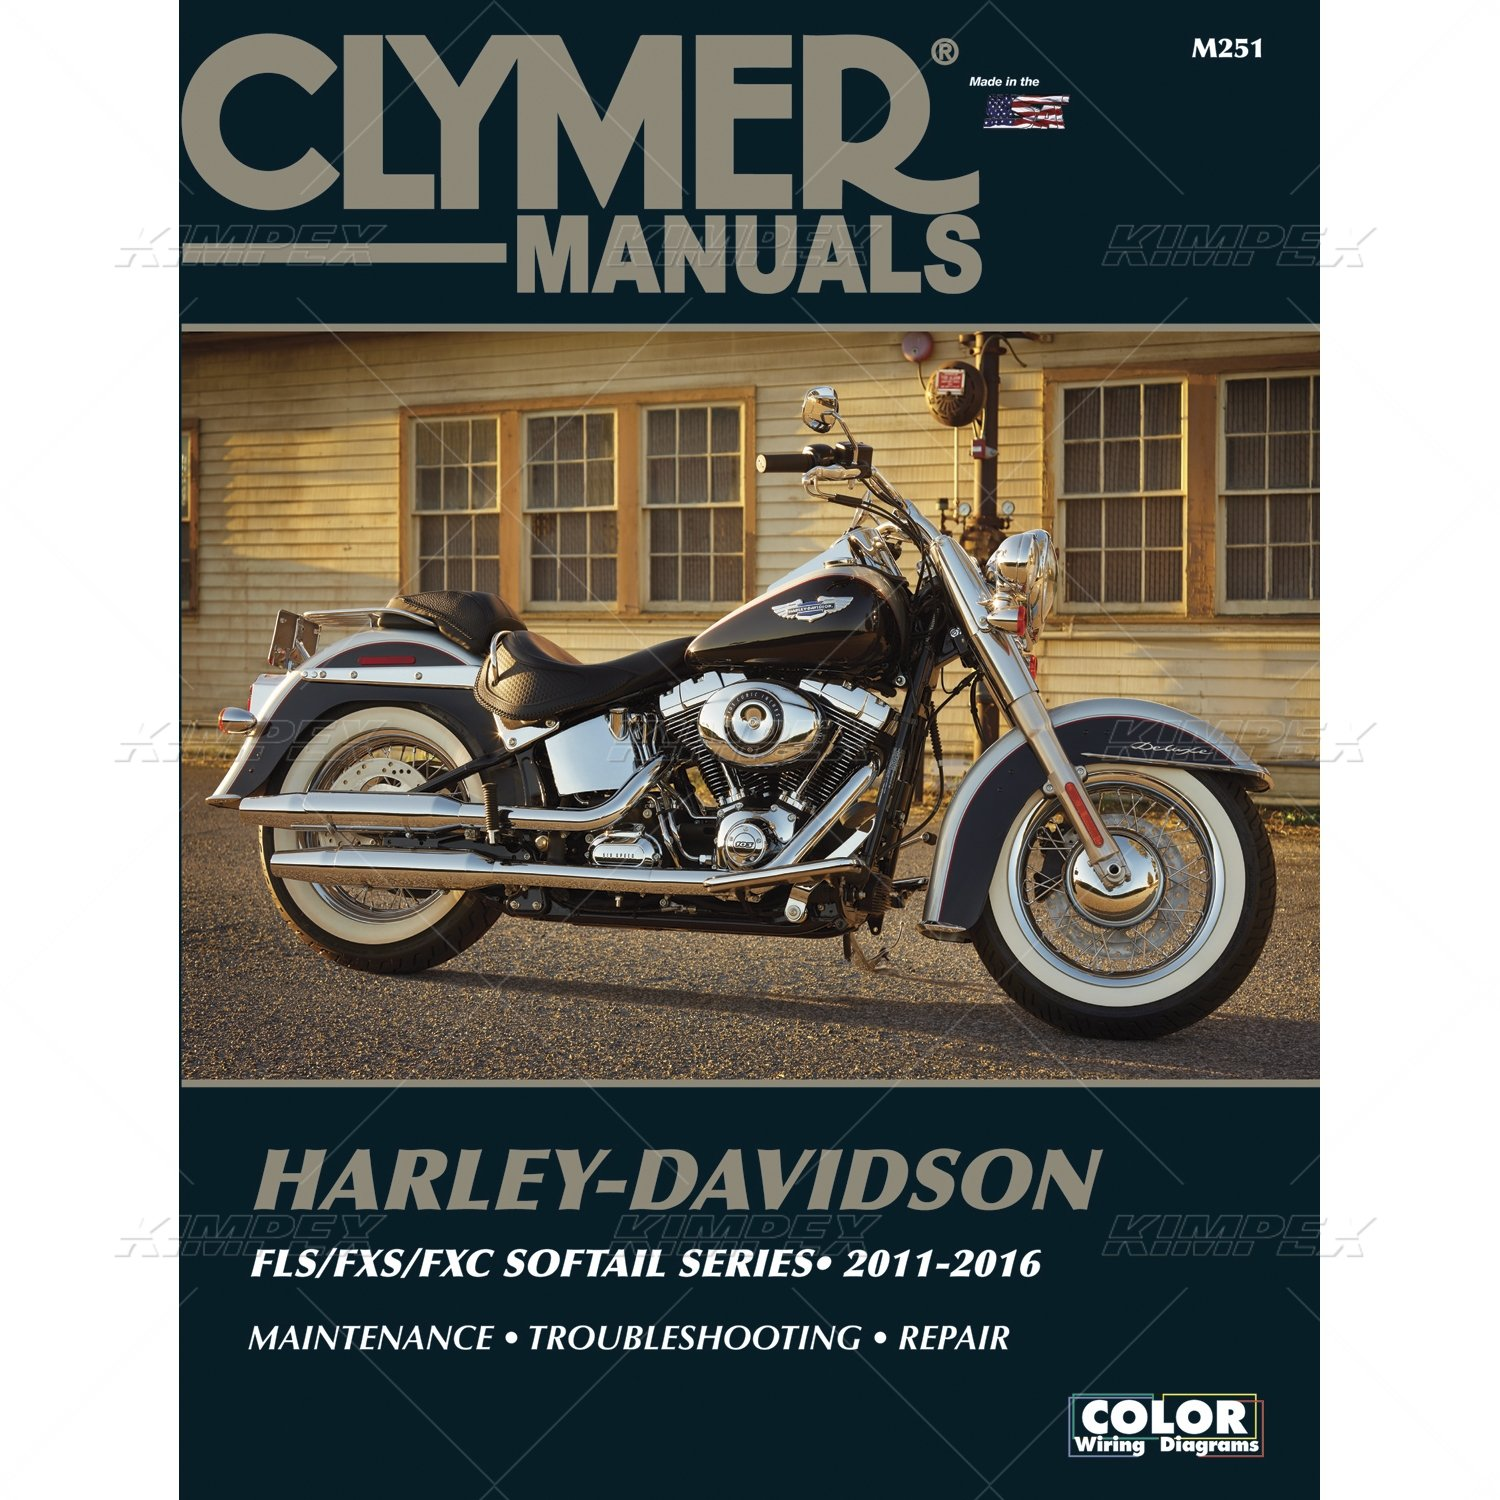 Clymer Harley Davidson Flst Fxst Softails 11 16 Manual 2014 Switch Back Wiring Diagram Automotive